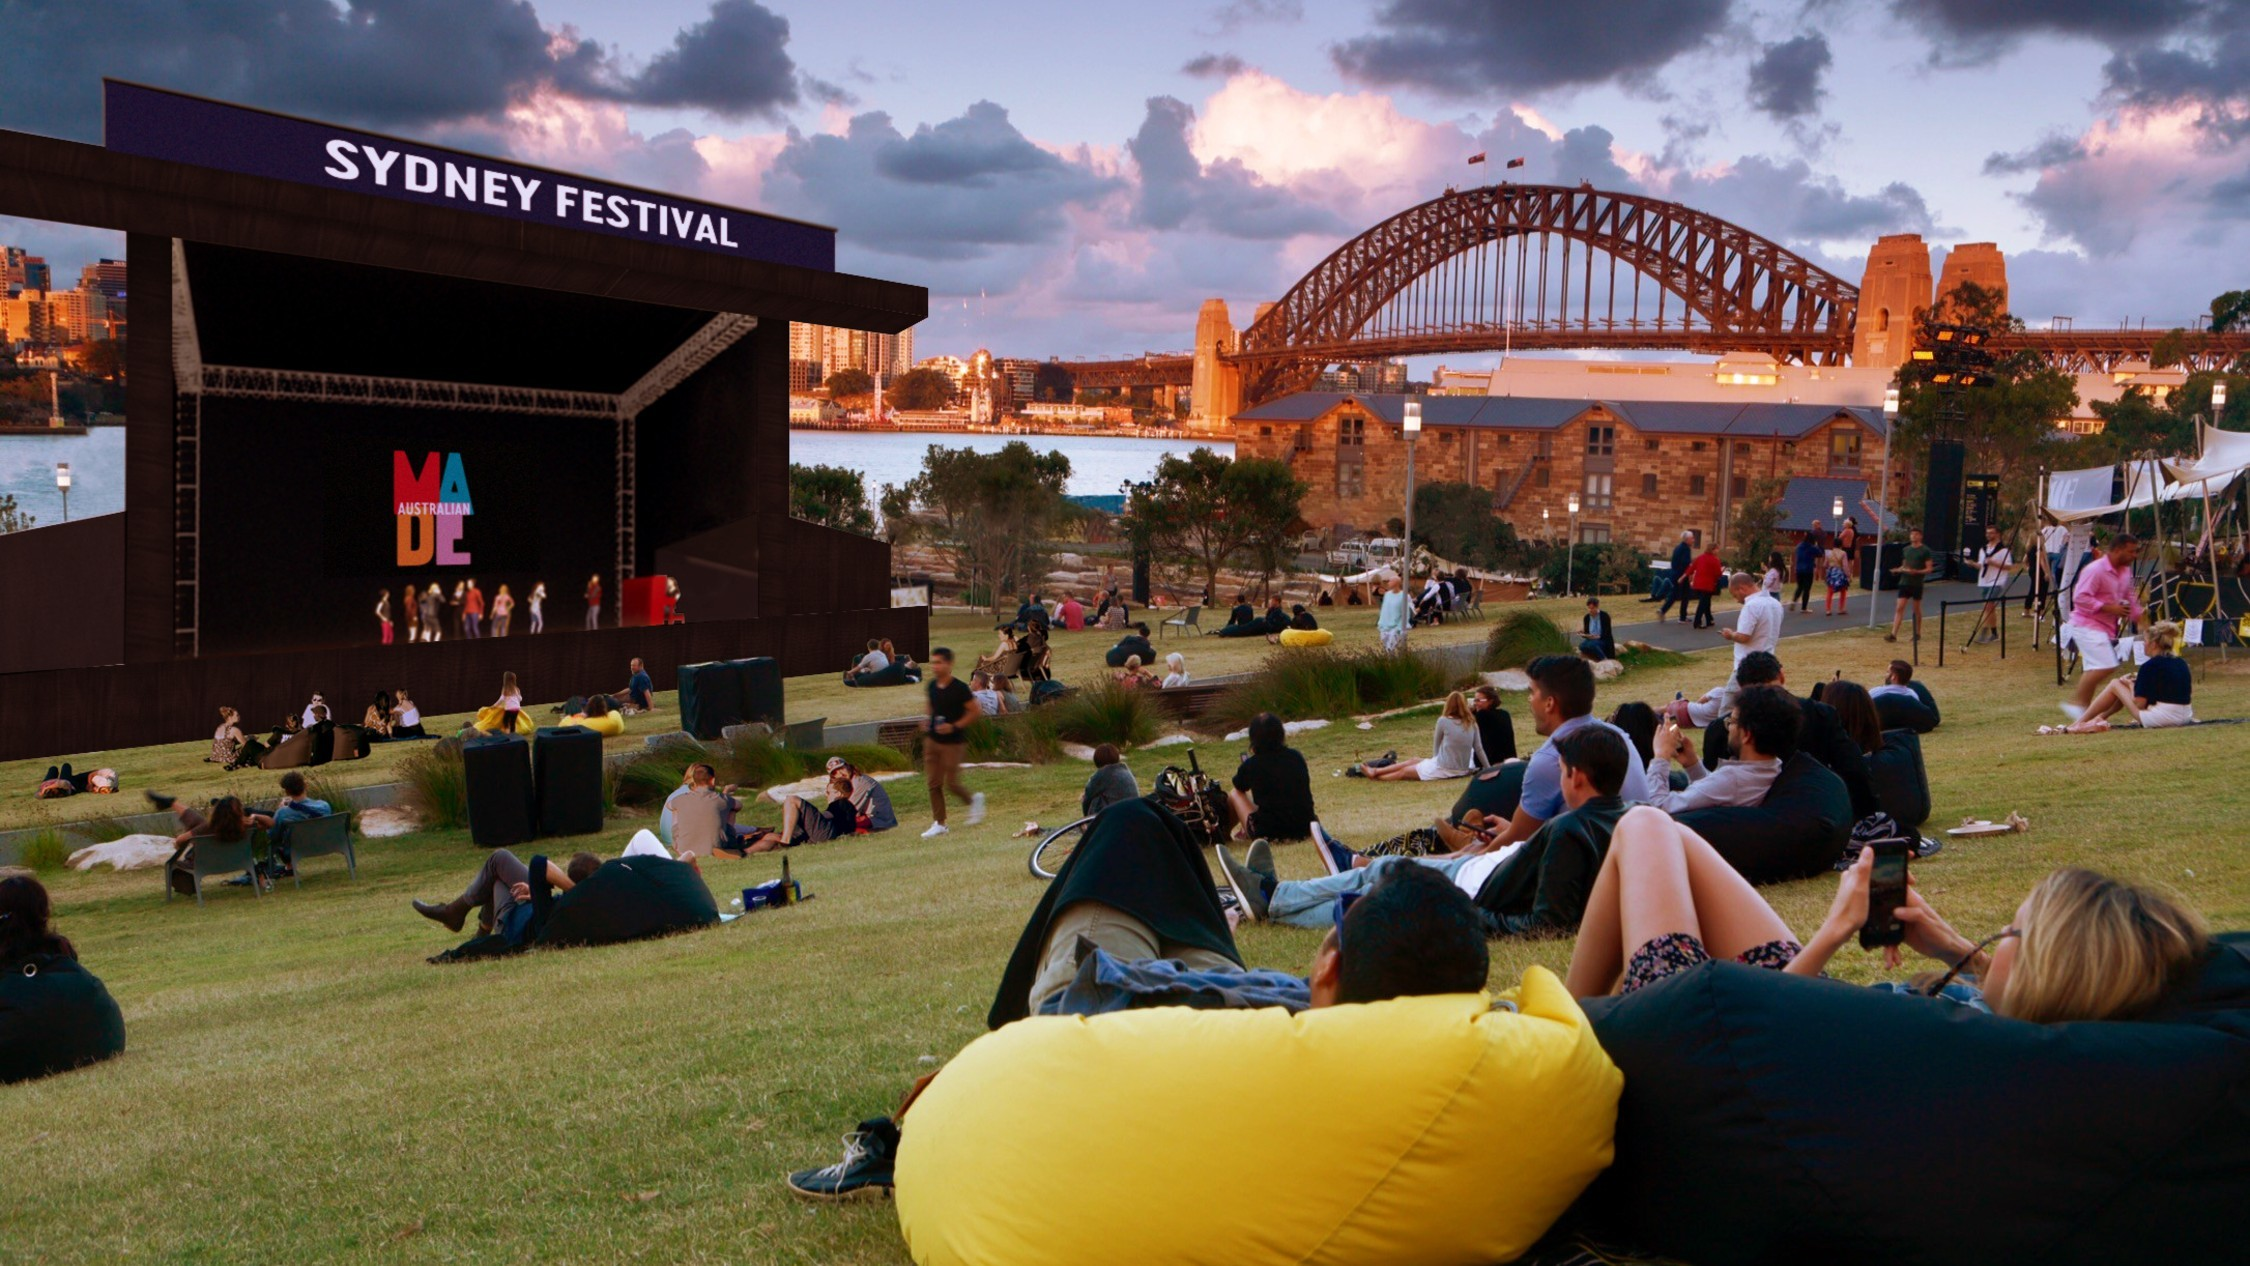 People lounge on beanbags at Barangaroo looking out to a Sydney Festival stage with the Harbour Bridge in the background